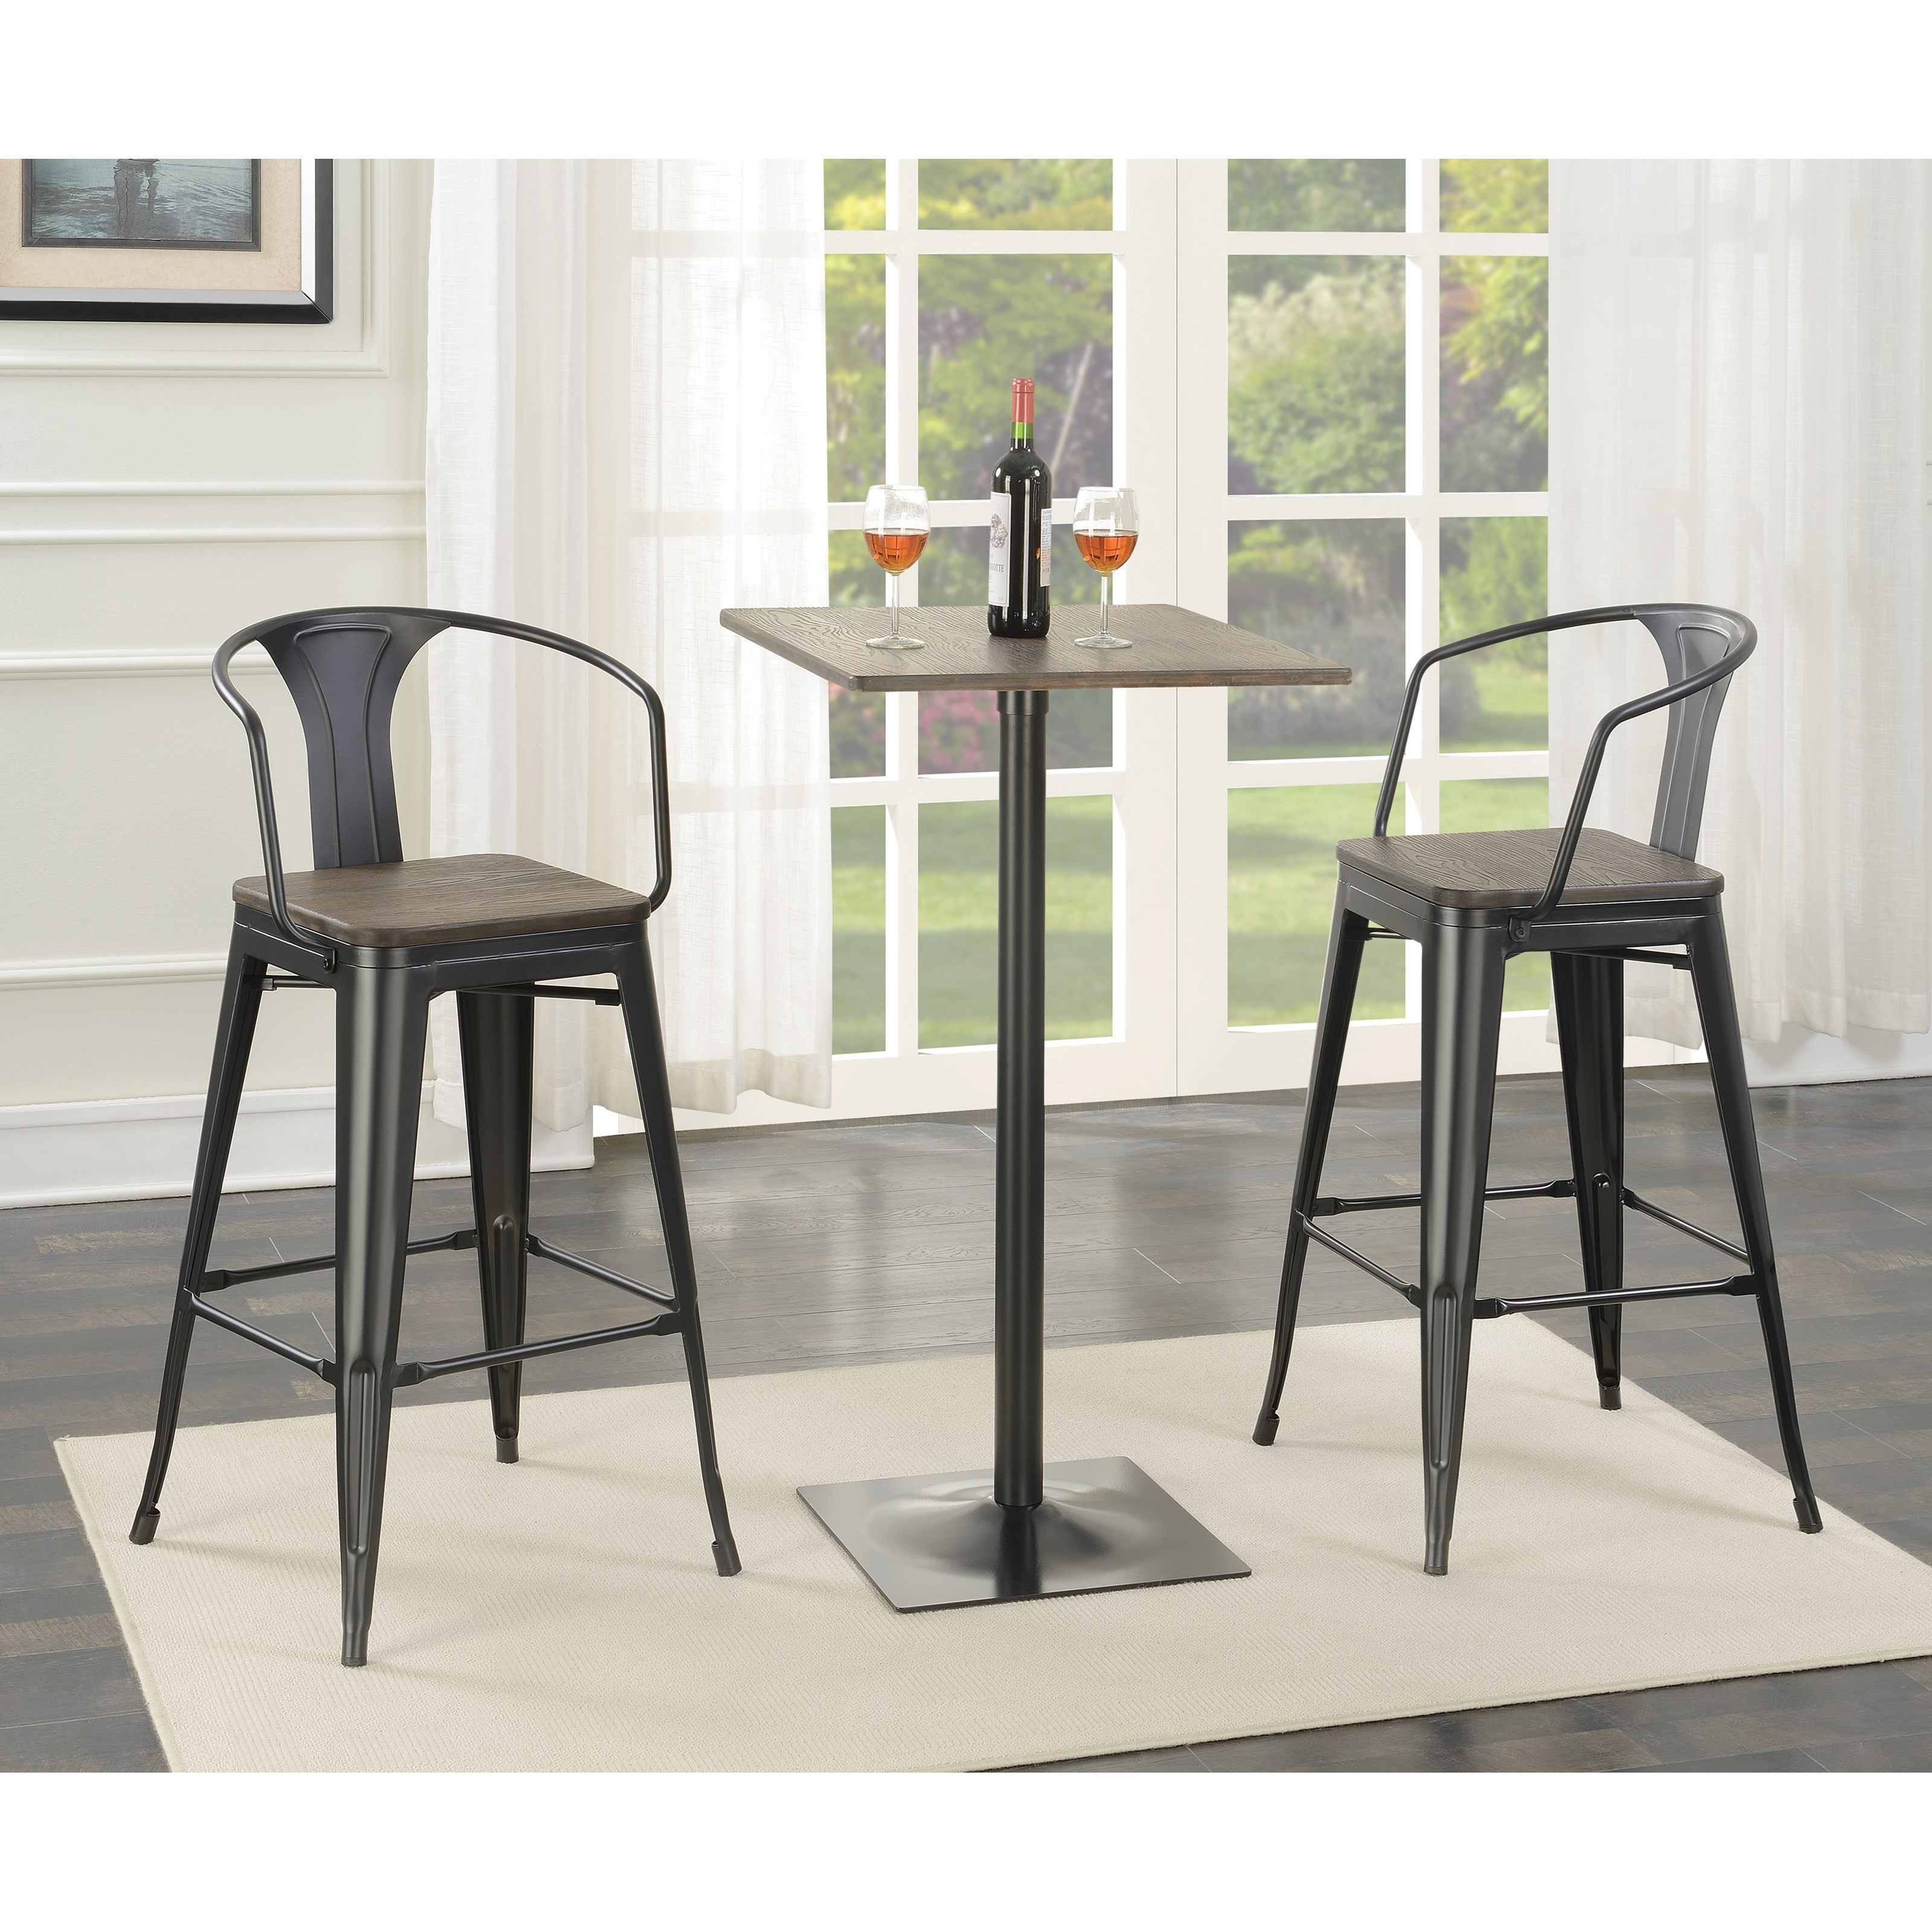 Industrial Bar Table and Stool Set